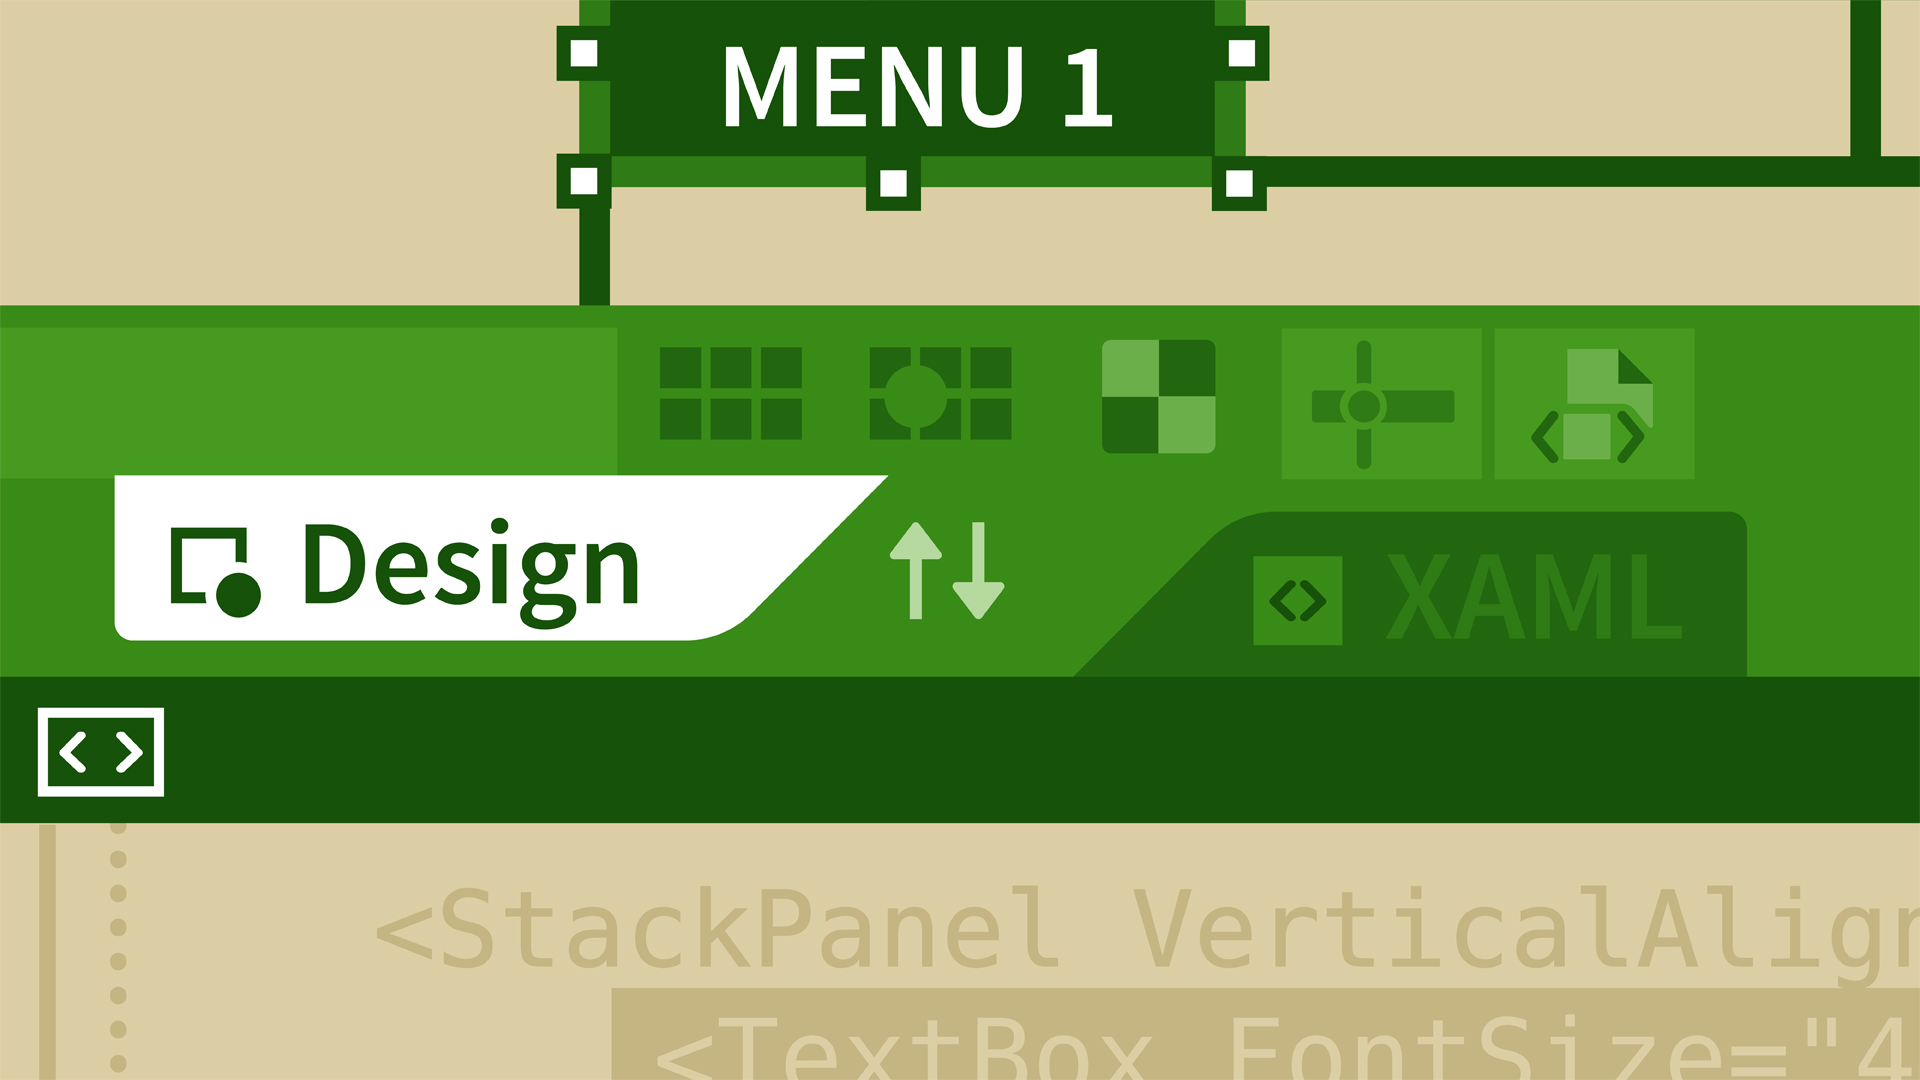 Developing UWP Apps: 1 Layout and Navigation